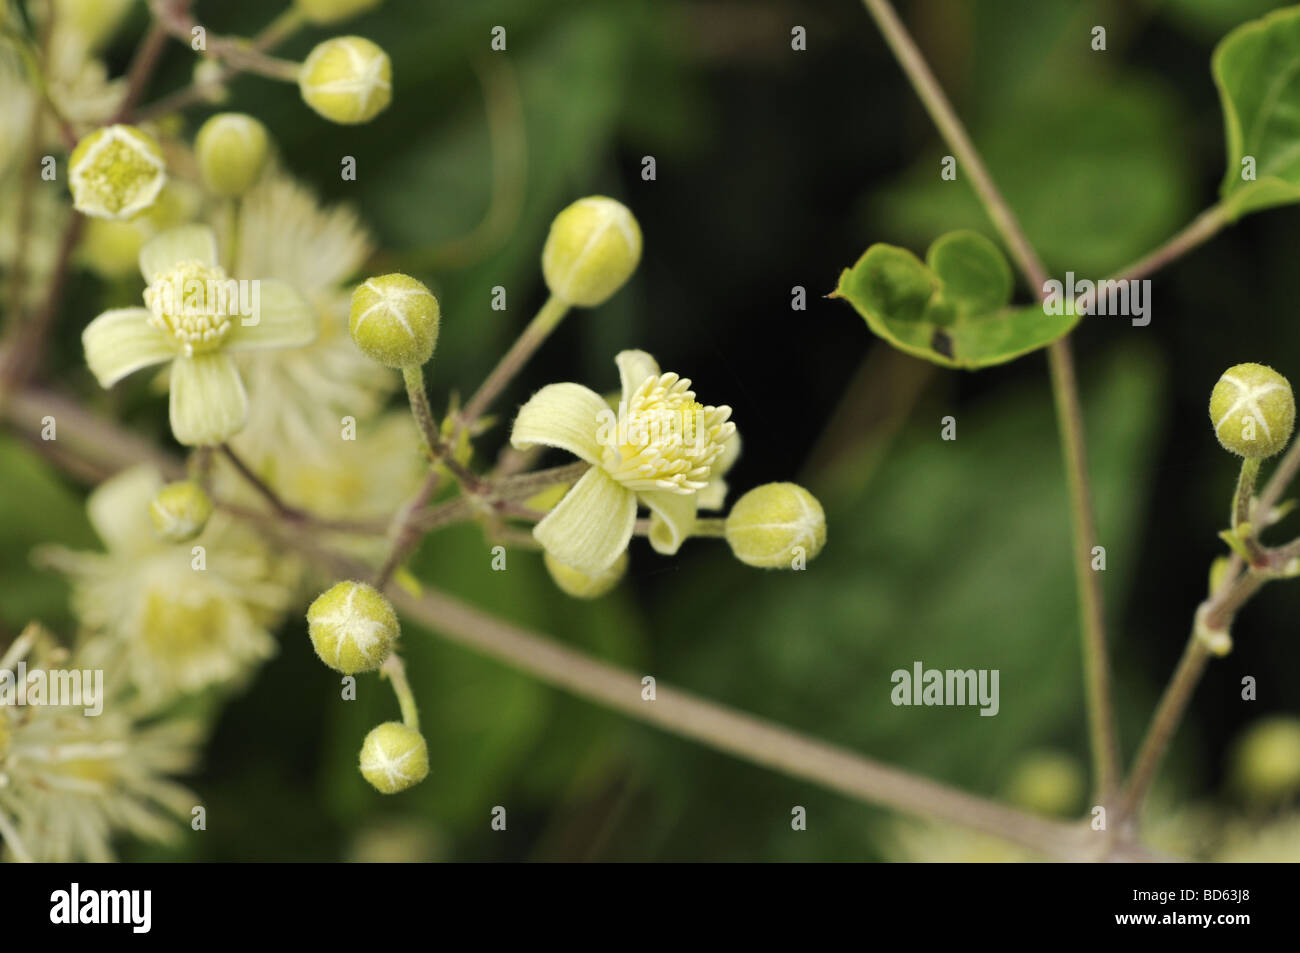 Clematis vitalba Old Man s Beard - Stock Image